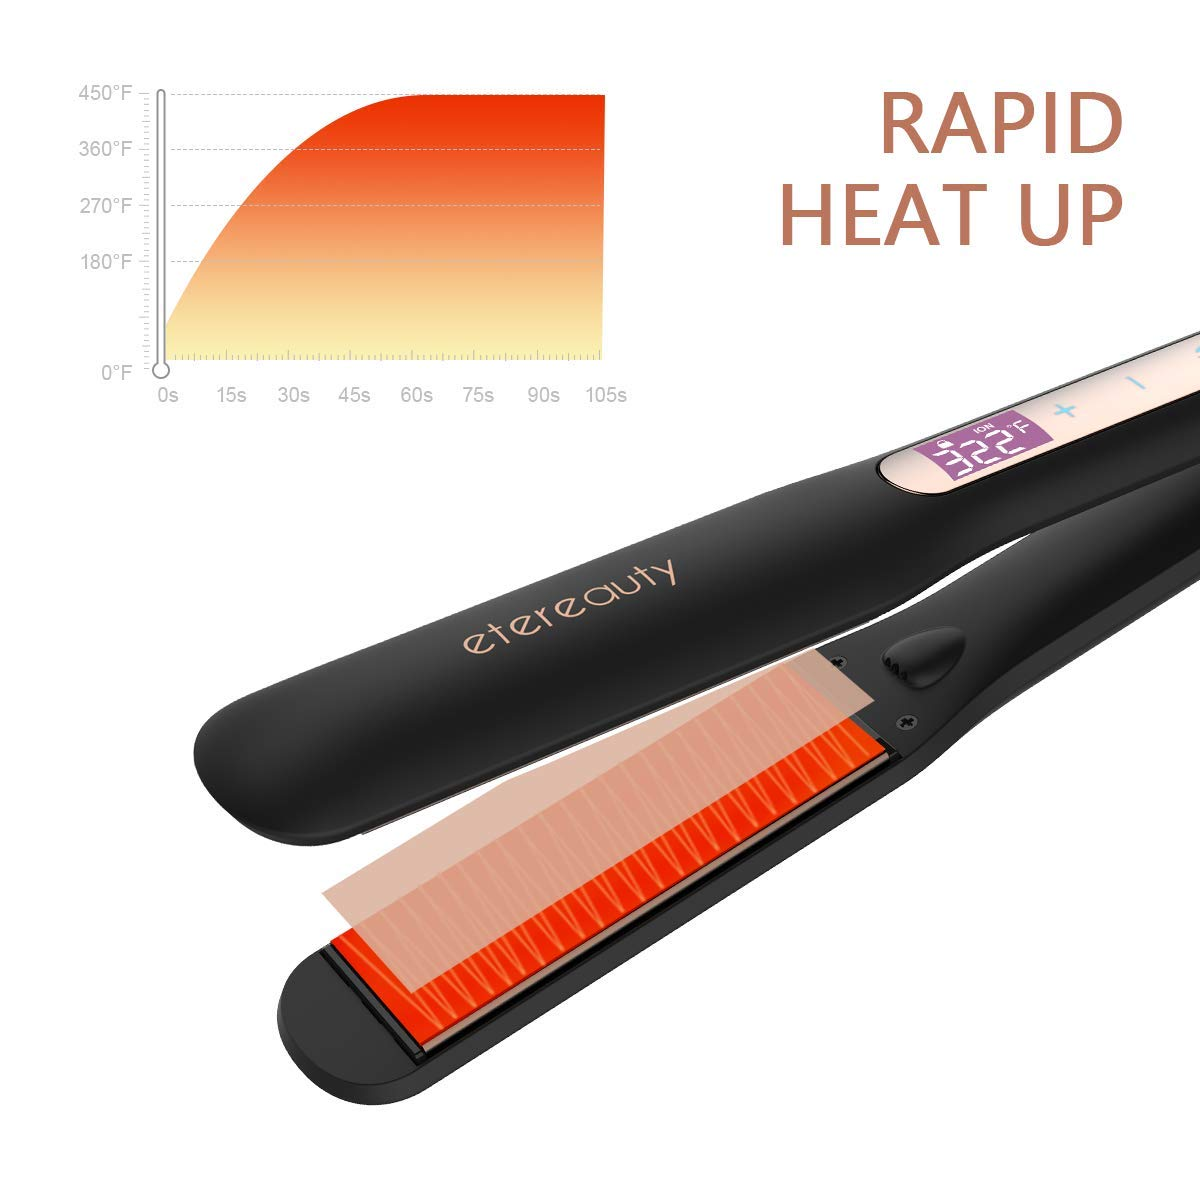 2-in-1 Hair Straightener & Curling Iron, Professional Flat Iron Titanium with Adjustable Temperature